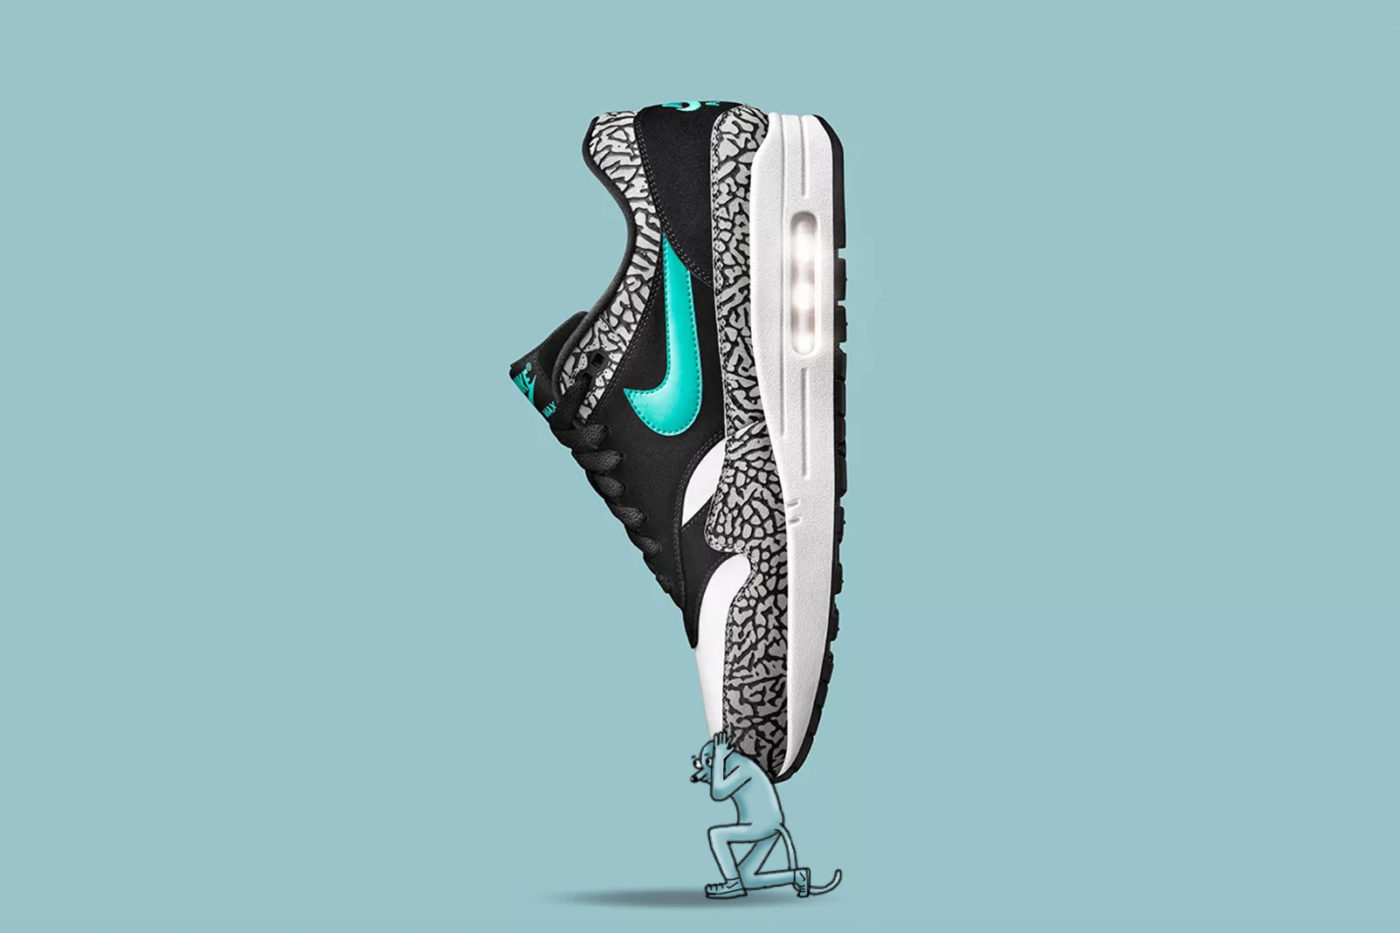 AJS artwork partnership with Nike for Air Max Day